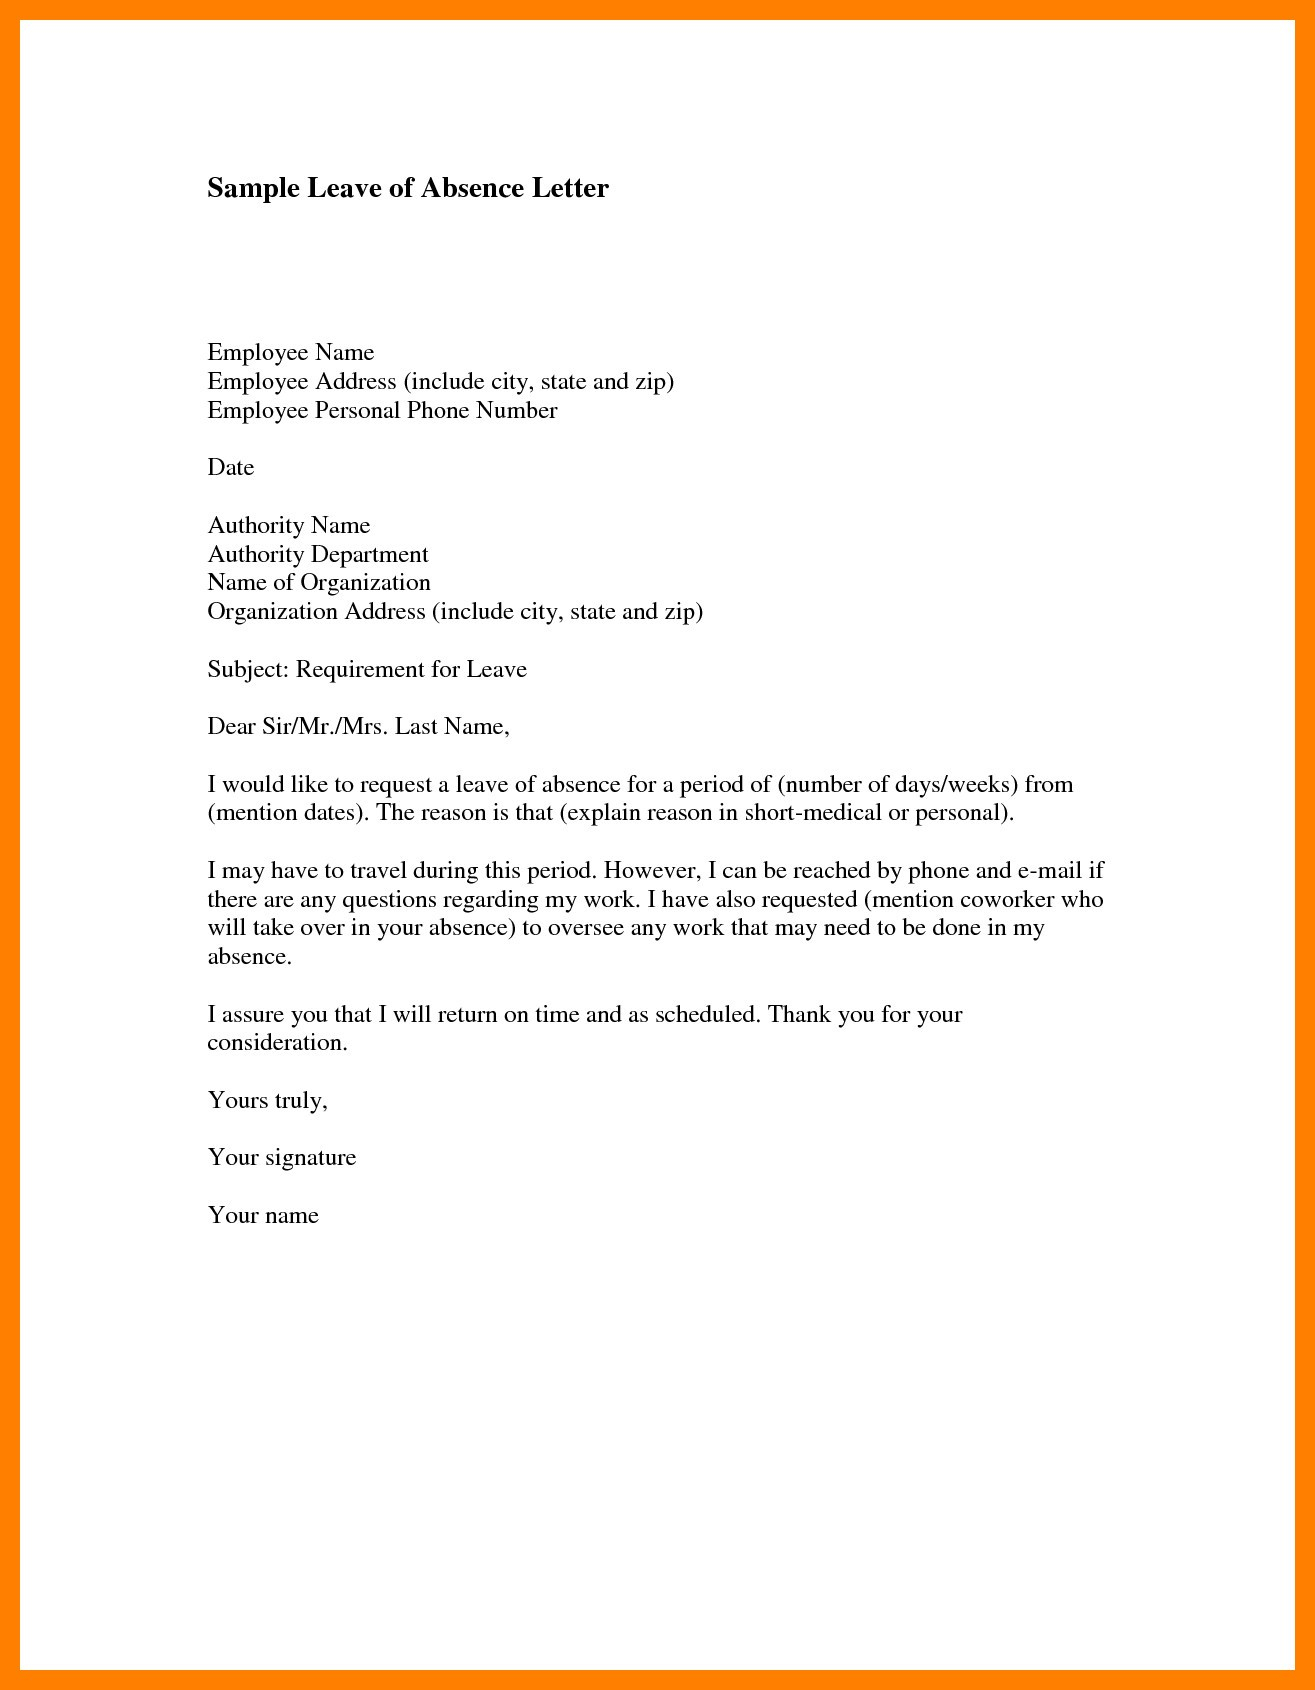 Personal Leave Of Absence Letter Template - Leave Letter format for Employee New Sample Leave Absence Letter to